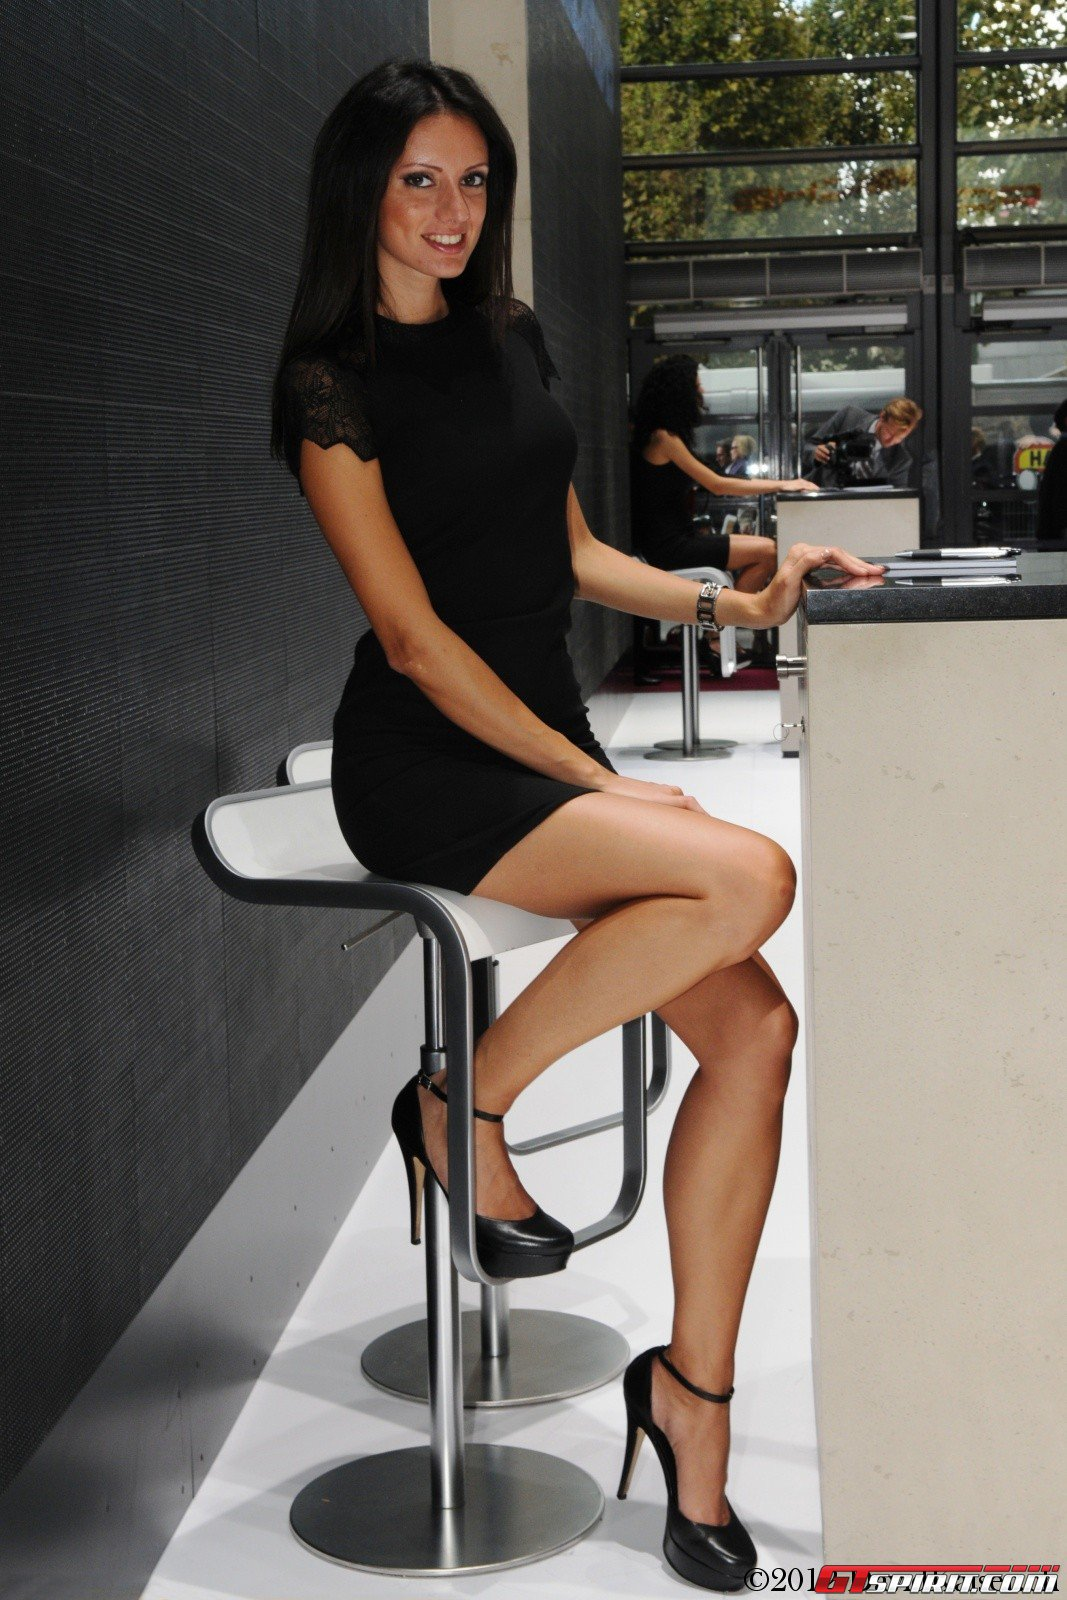 Paris Motor Show 2012 Girls by David Kaiser Photography - Part 2 Photo 36